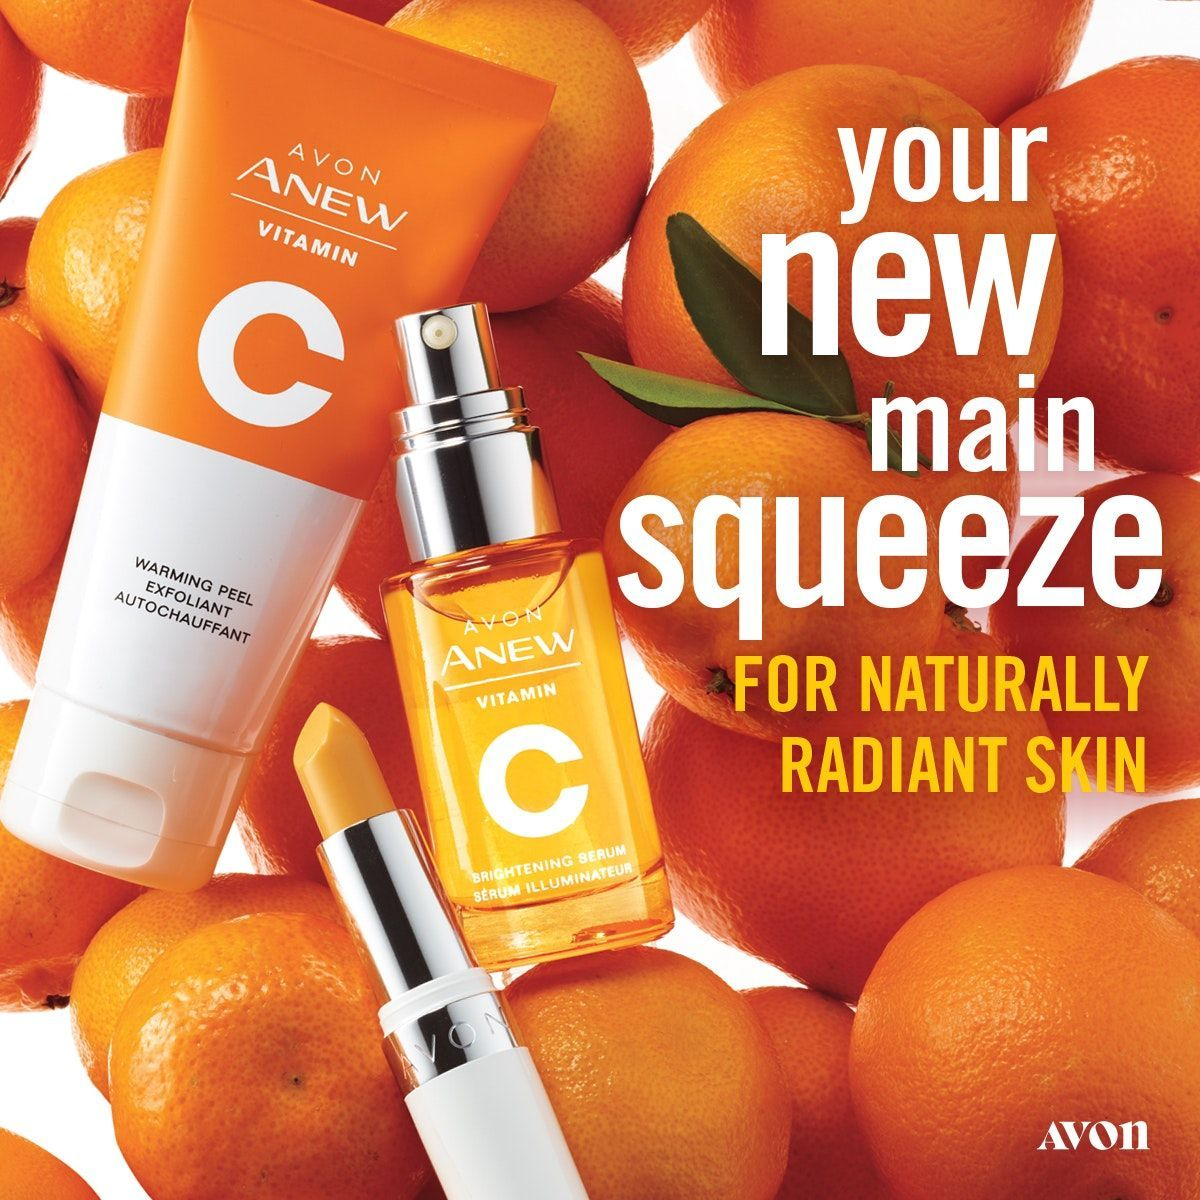 Are you getting your daily allowance of skin